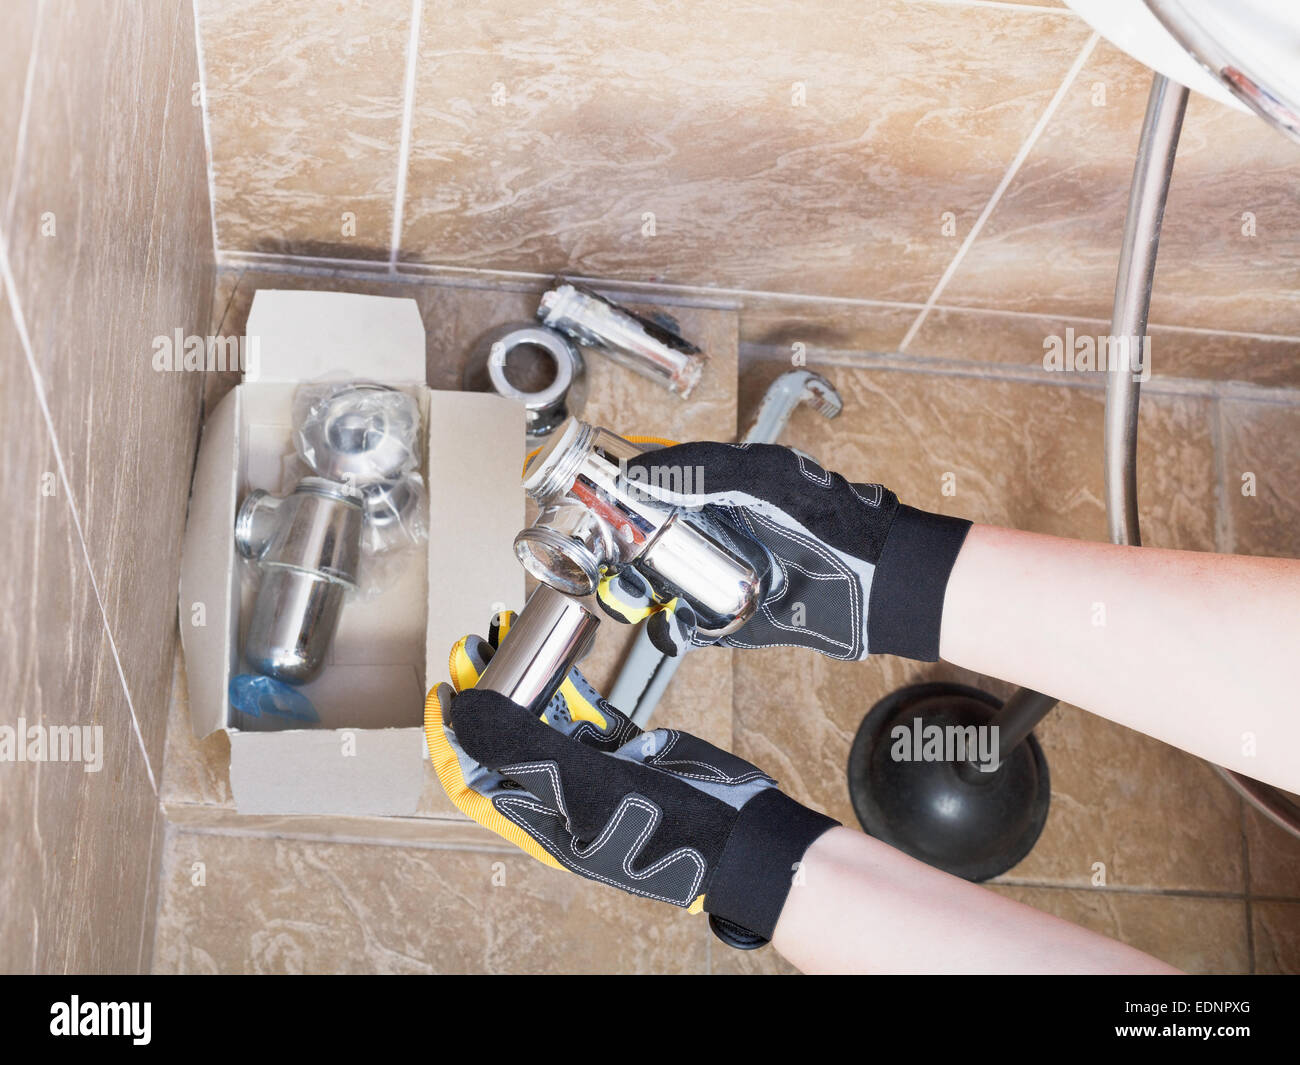 Waste Water Trap Stock Photos & Waste Water Trap Stock Images - Alamy